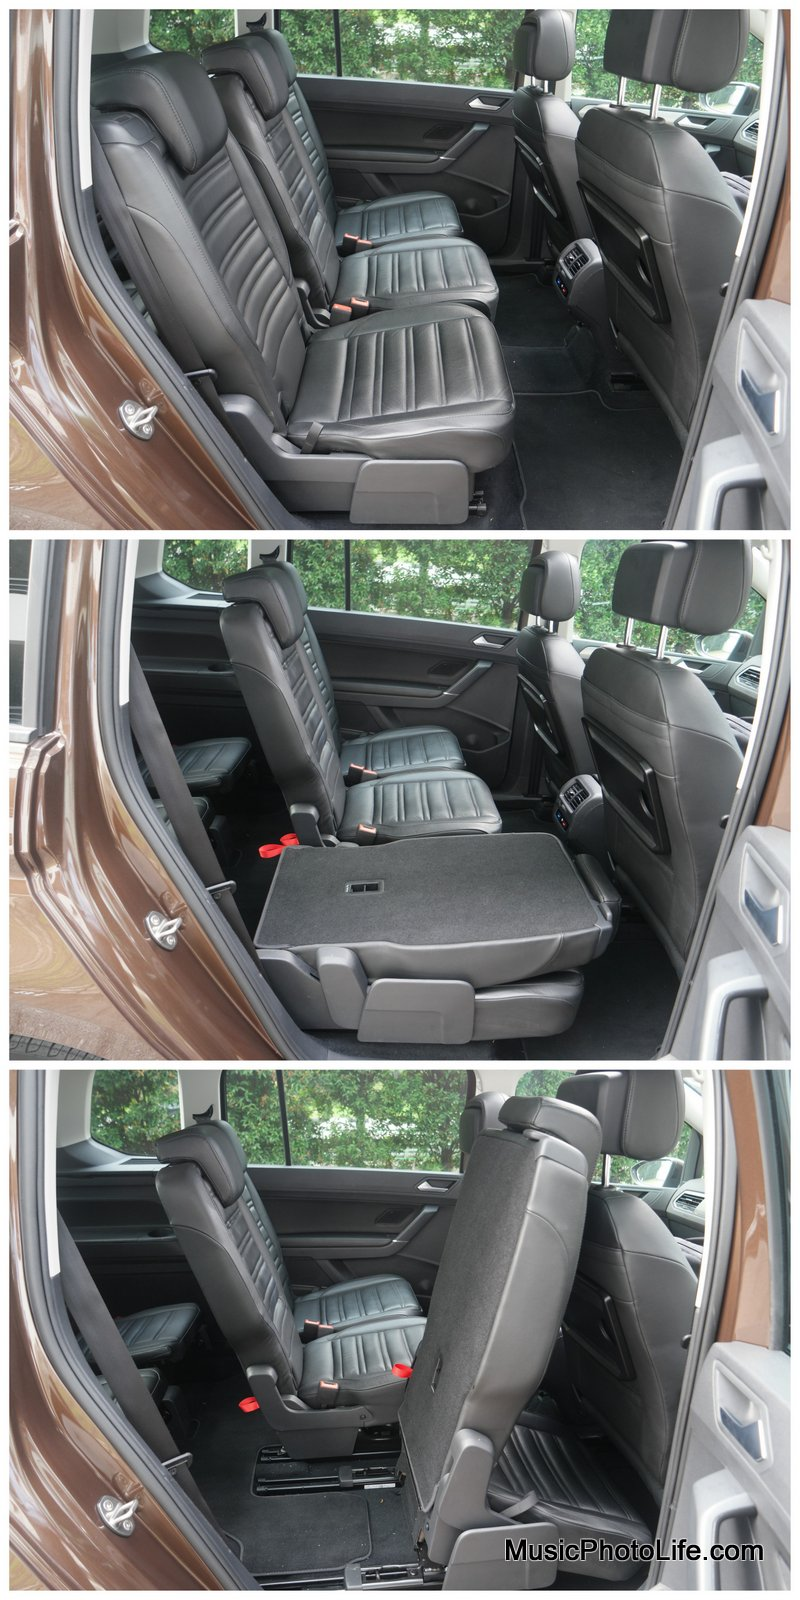 Volkswagen Touran ways to fold the middle row seat